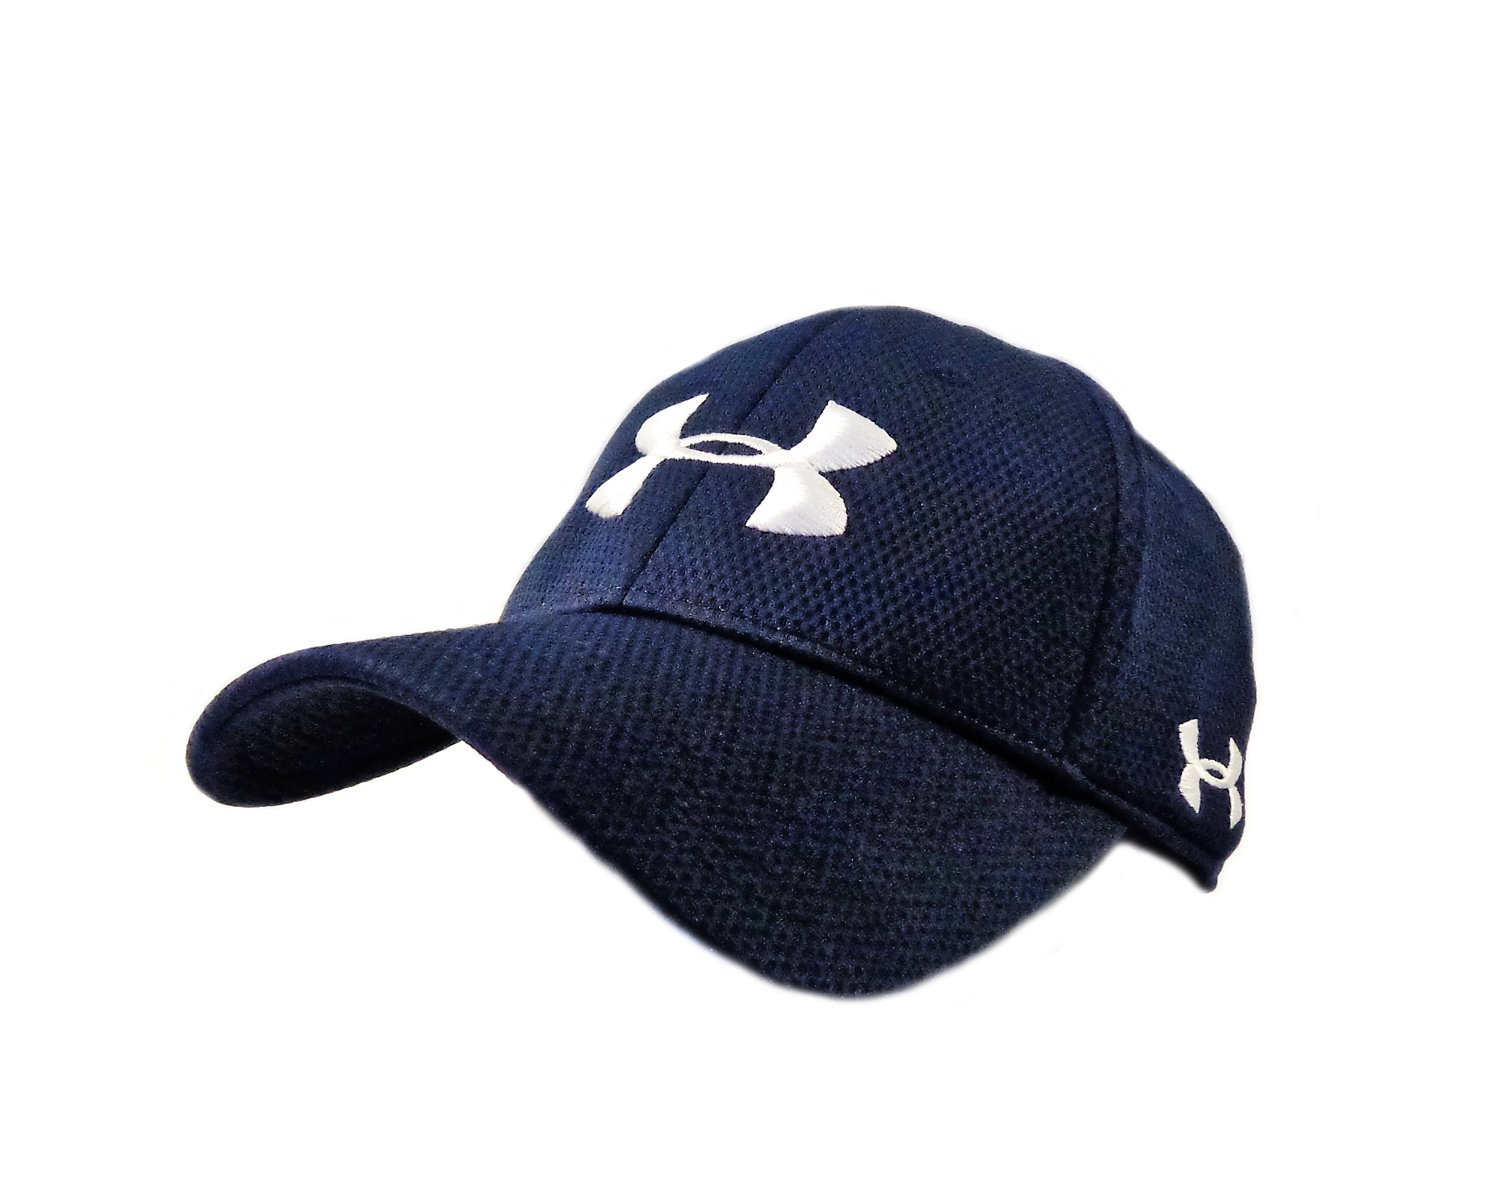 571bbb39685 Get Quotations · NEW Under Armour Performance Heat Gear Navy White Fitted L XL  Hat Cap